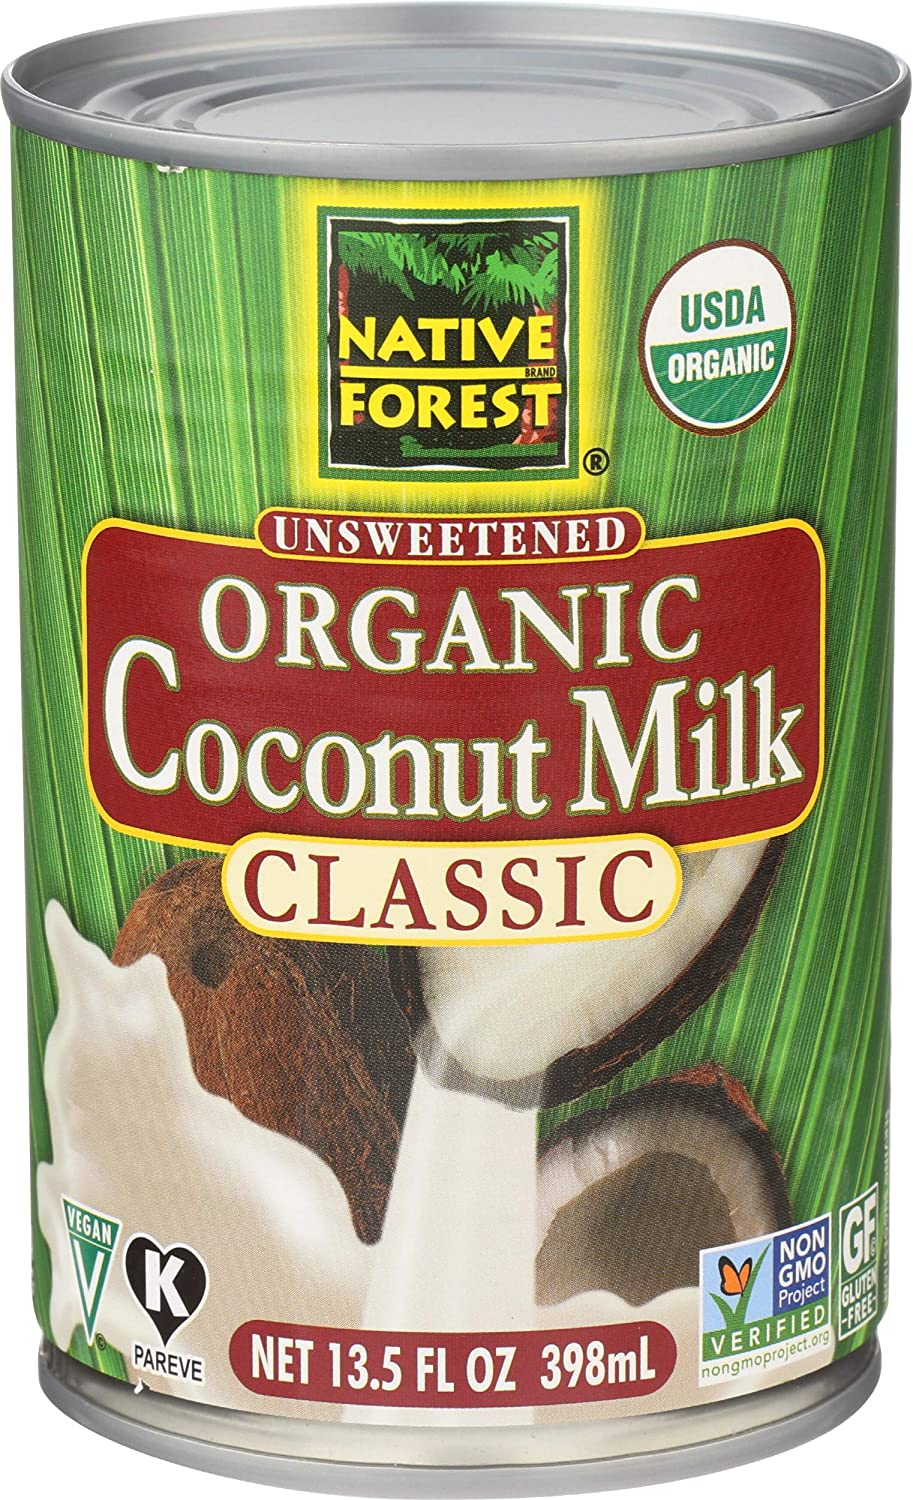 Native Forest Organic Classic Coconut Milk Cans - 13.5 oz